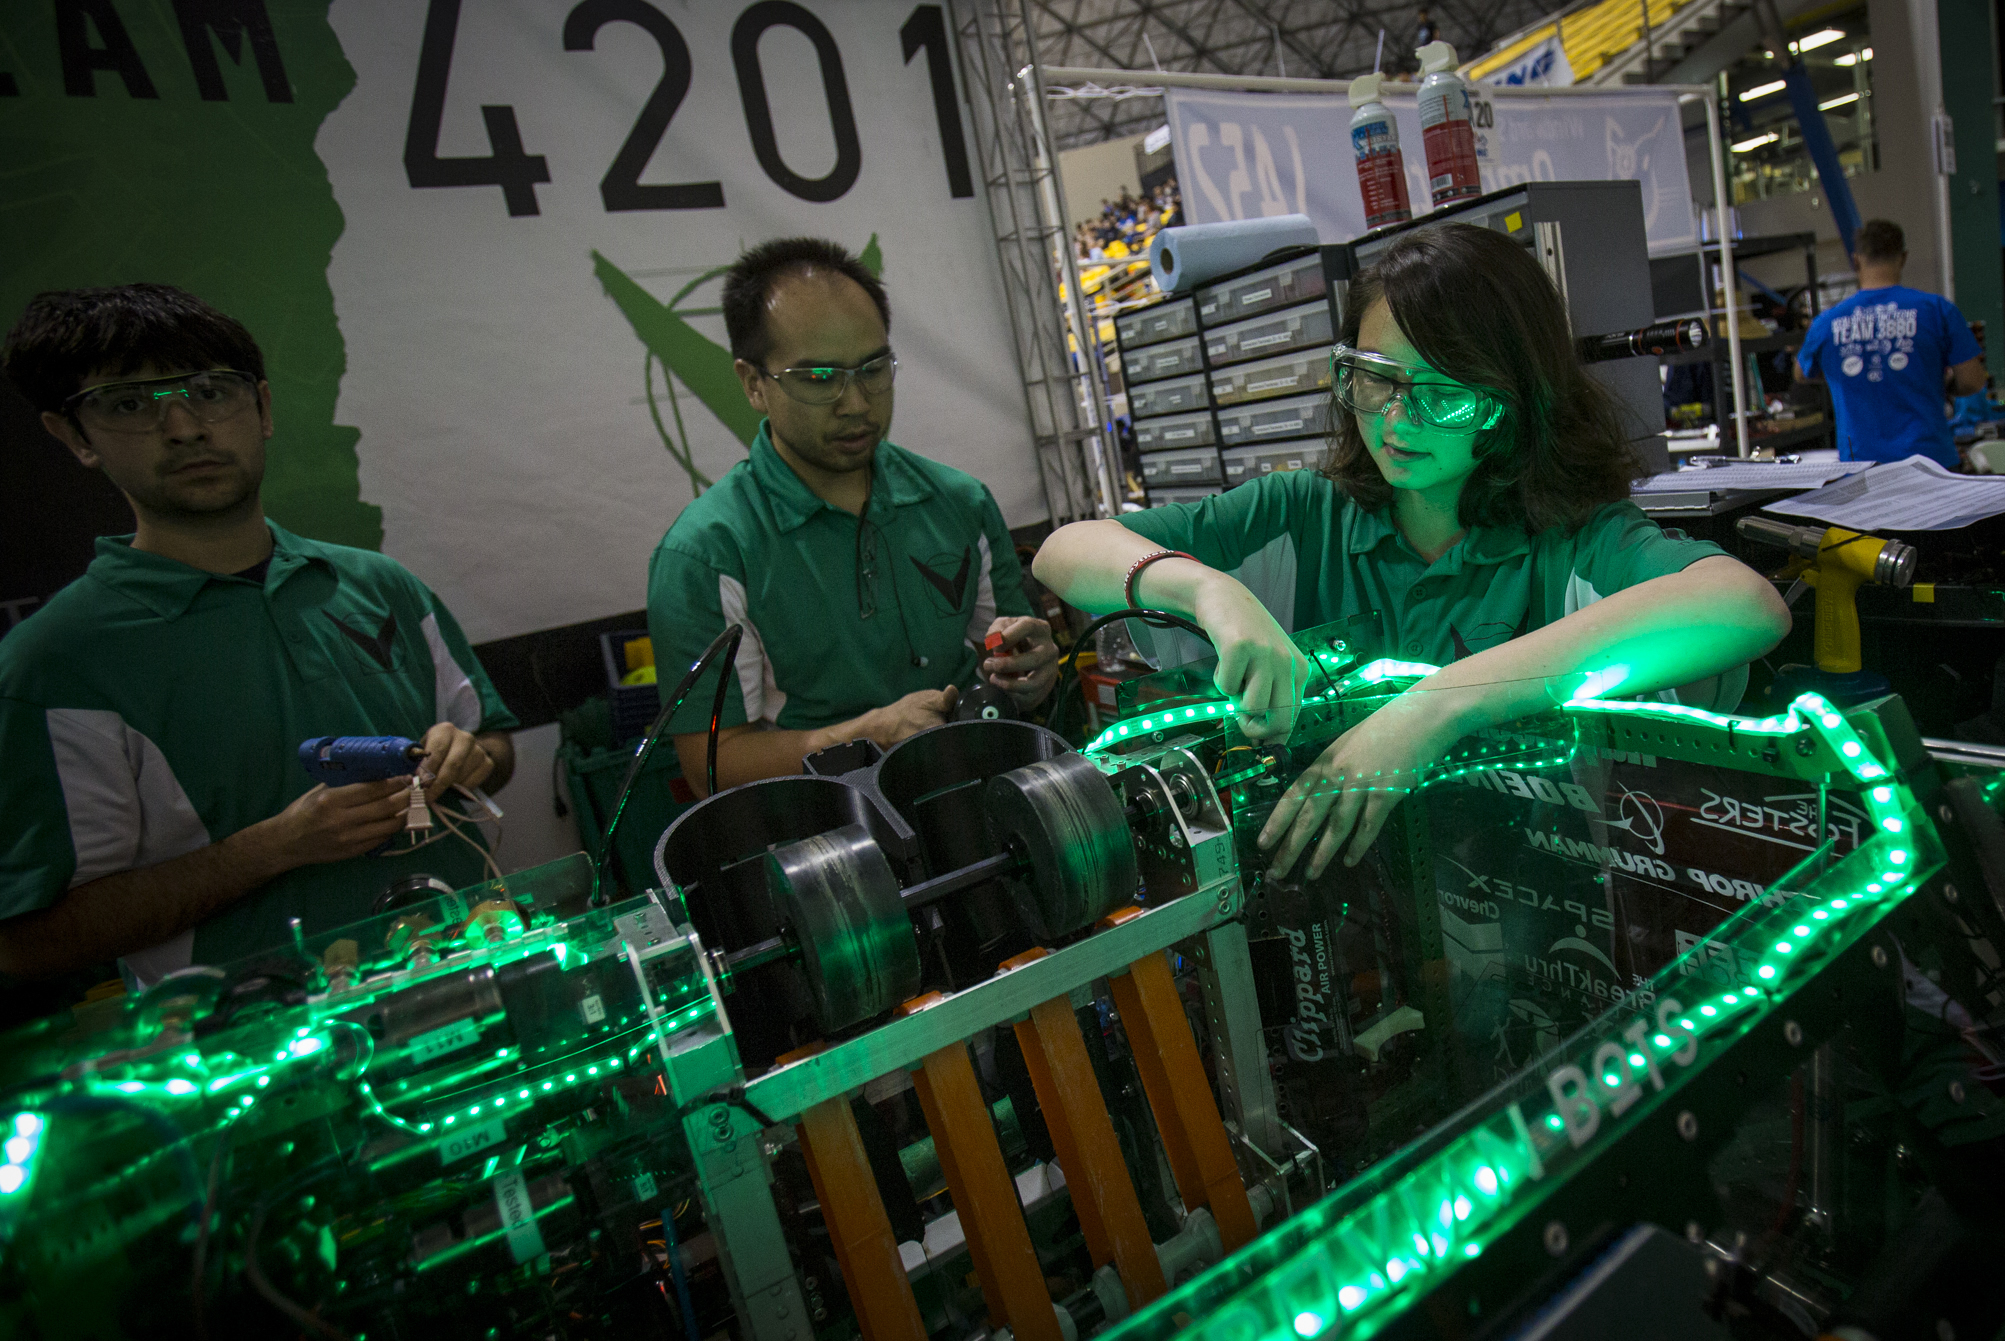 from inner tubes to high energy lasers